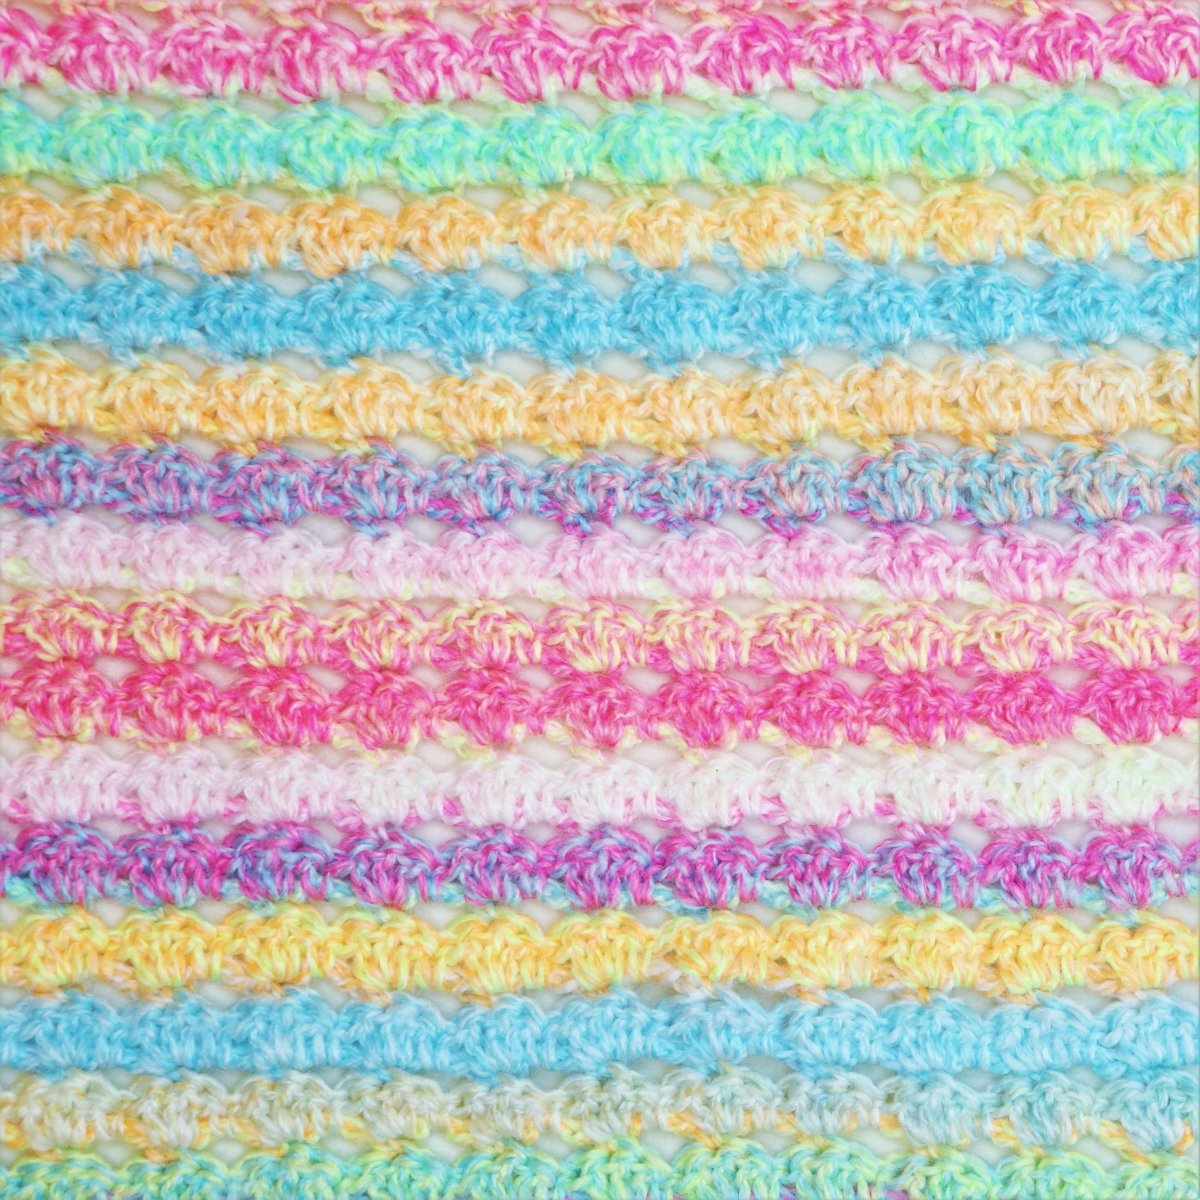 Candy Cradle Crochet Baby Blanket with Stacking Shells Border - secretyarnery